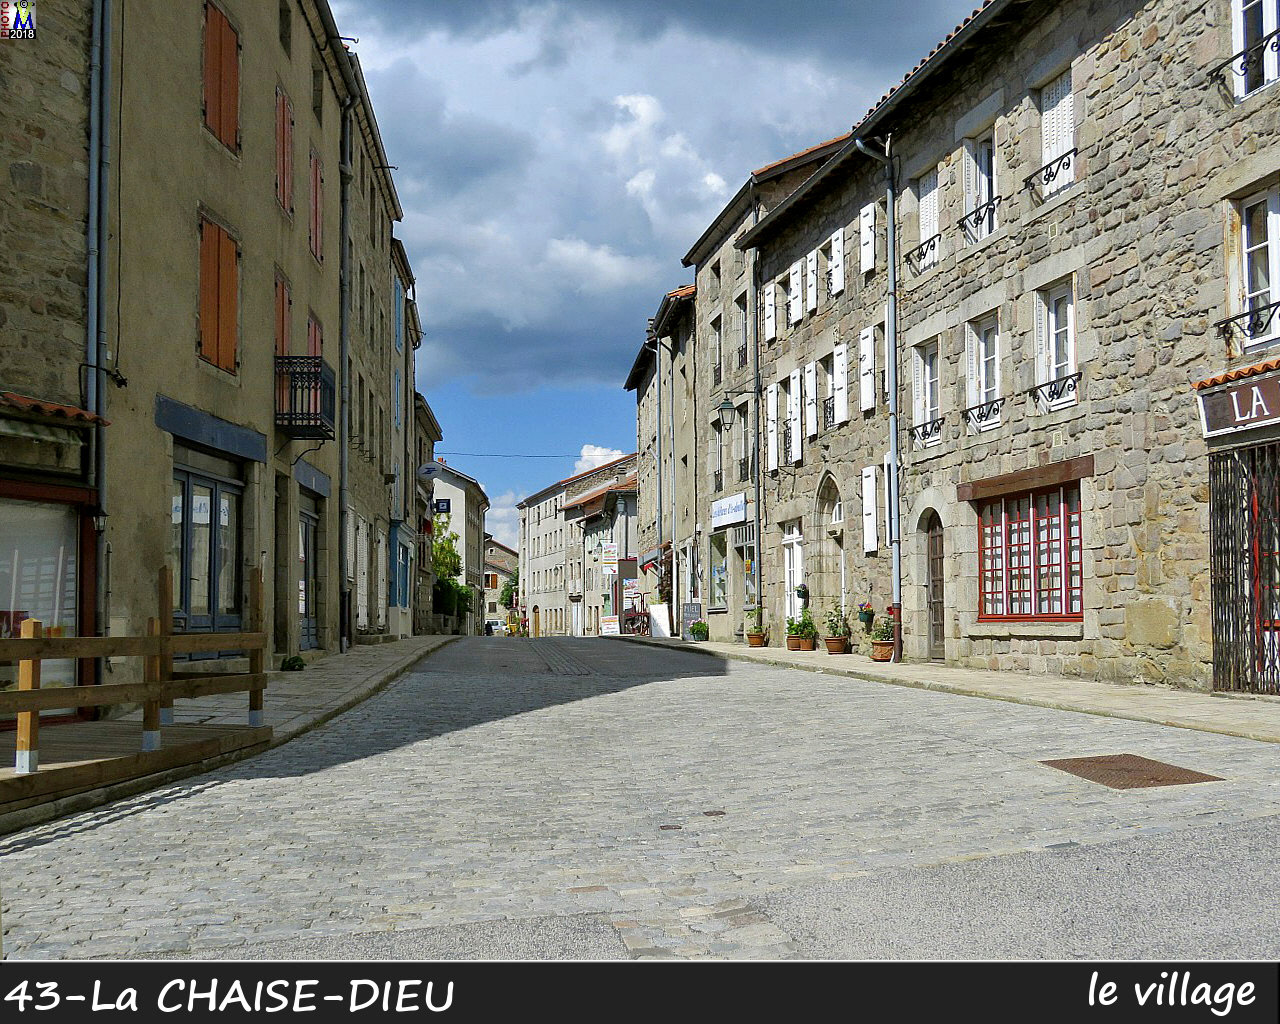 43CHAISE-DIEU_village_104.jpg